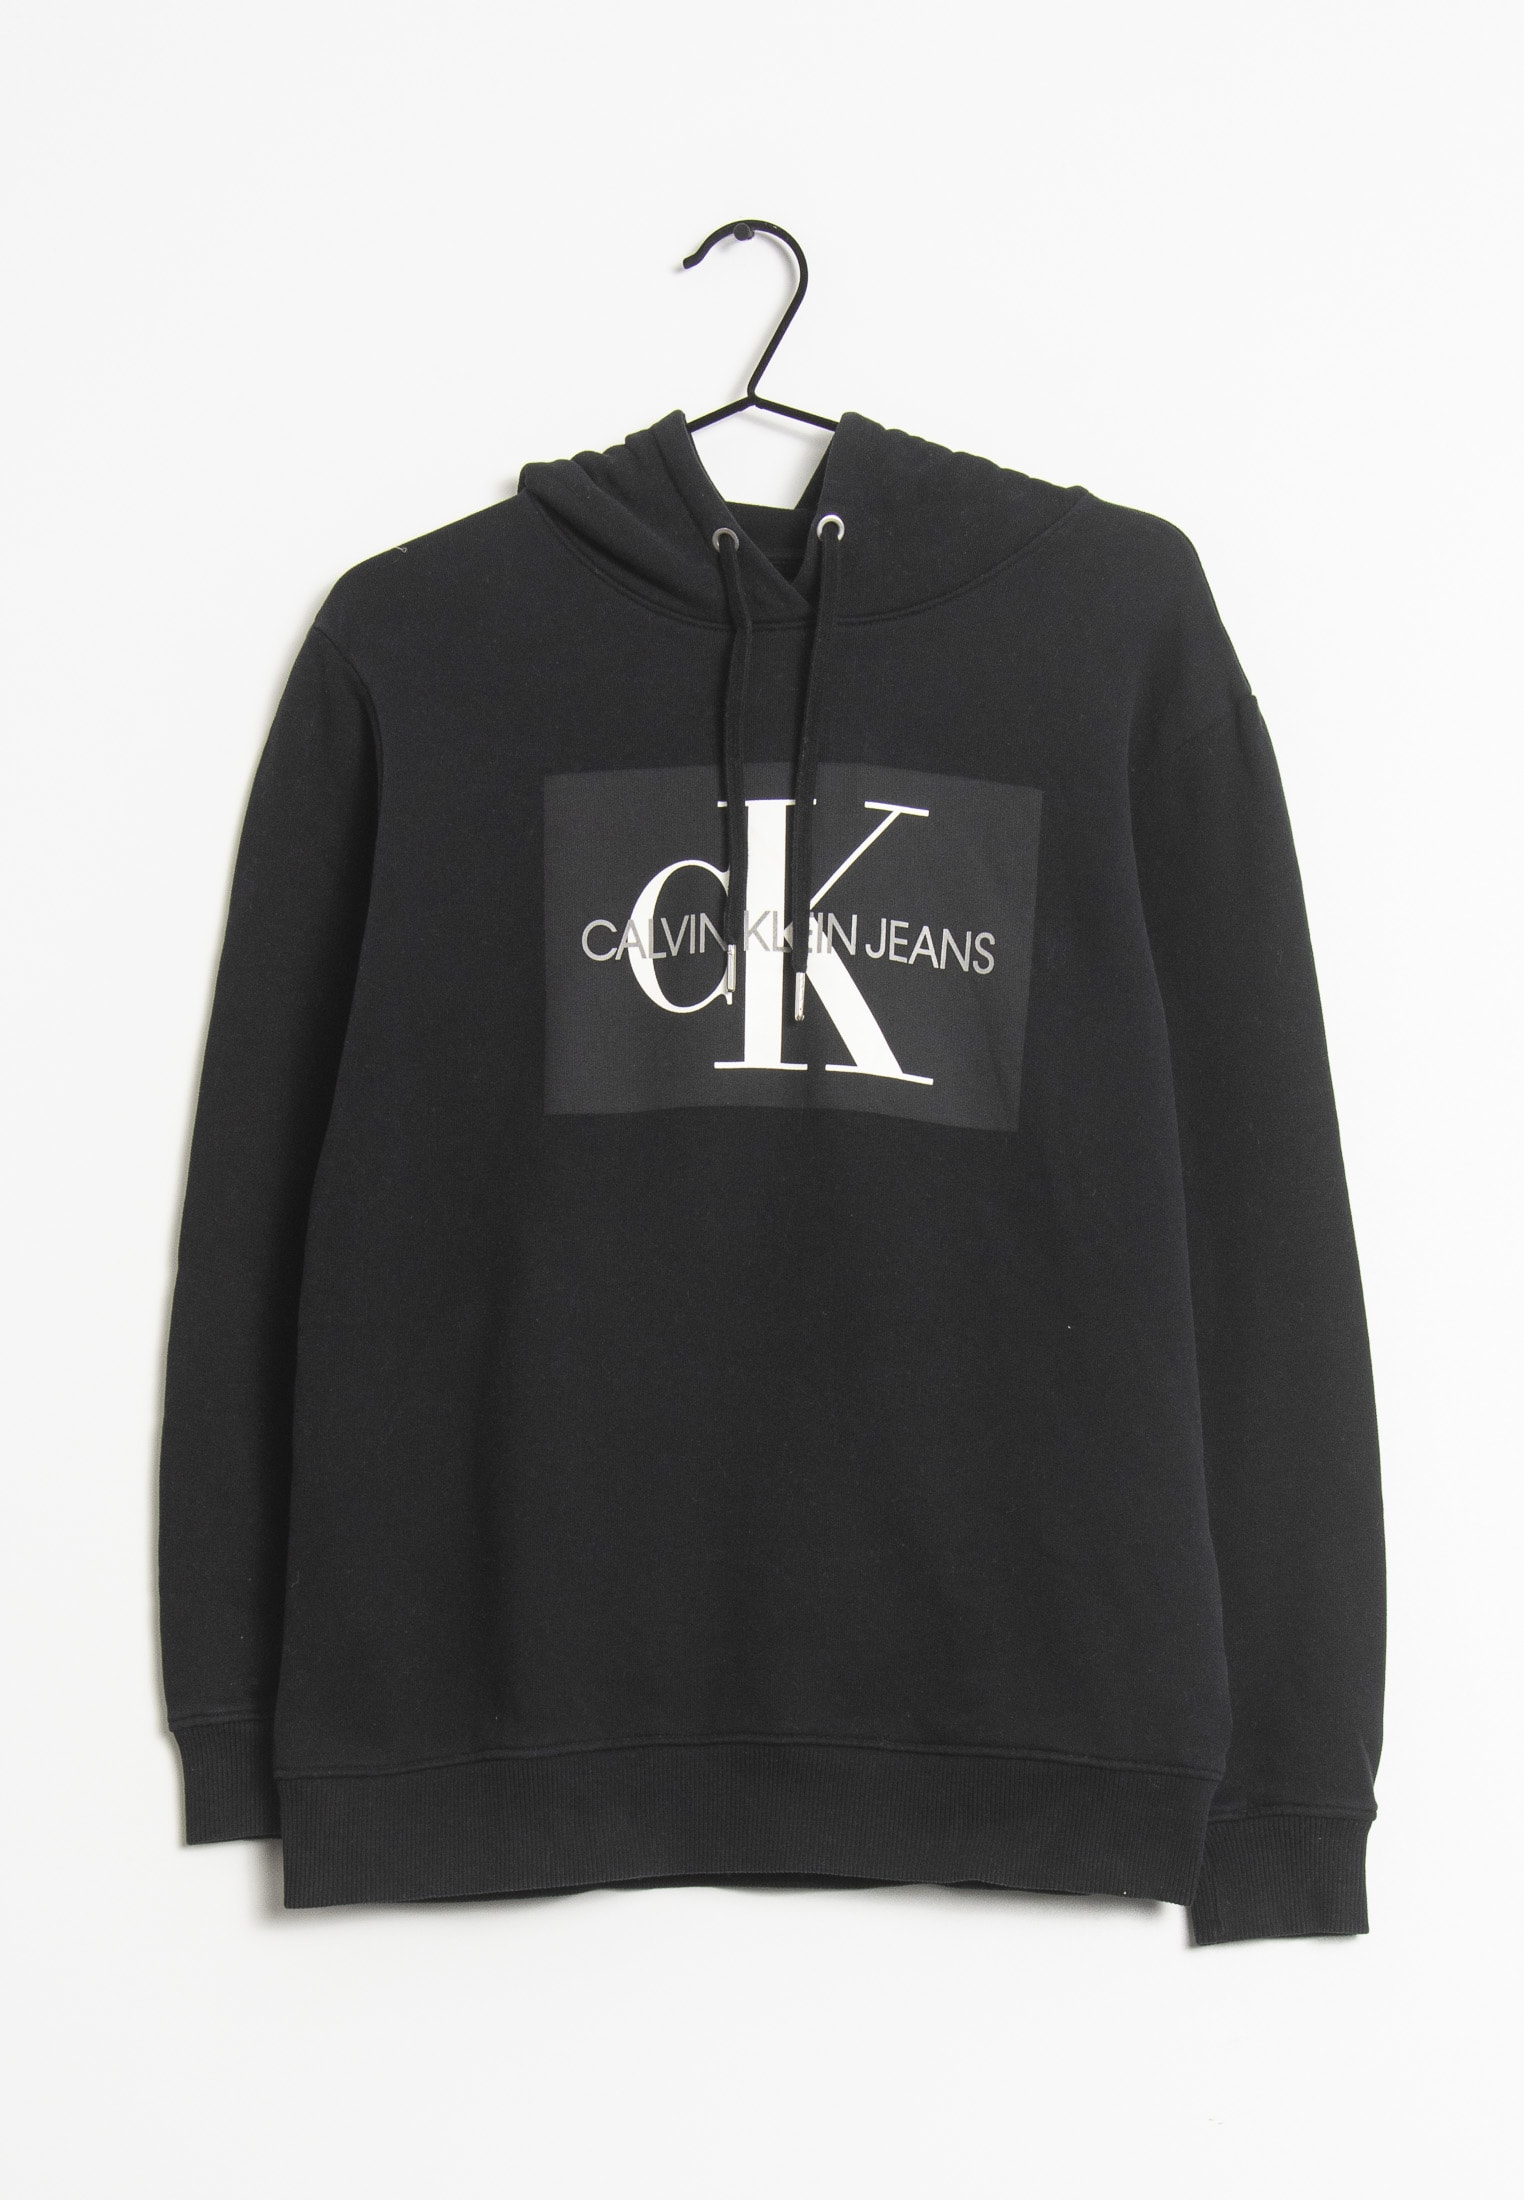 Calvin Klein Jeans Sweat / Fleece Schwarz Gr.S